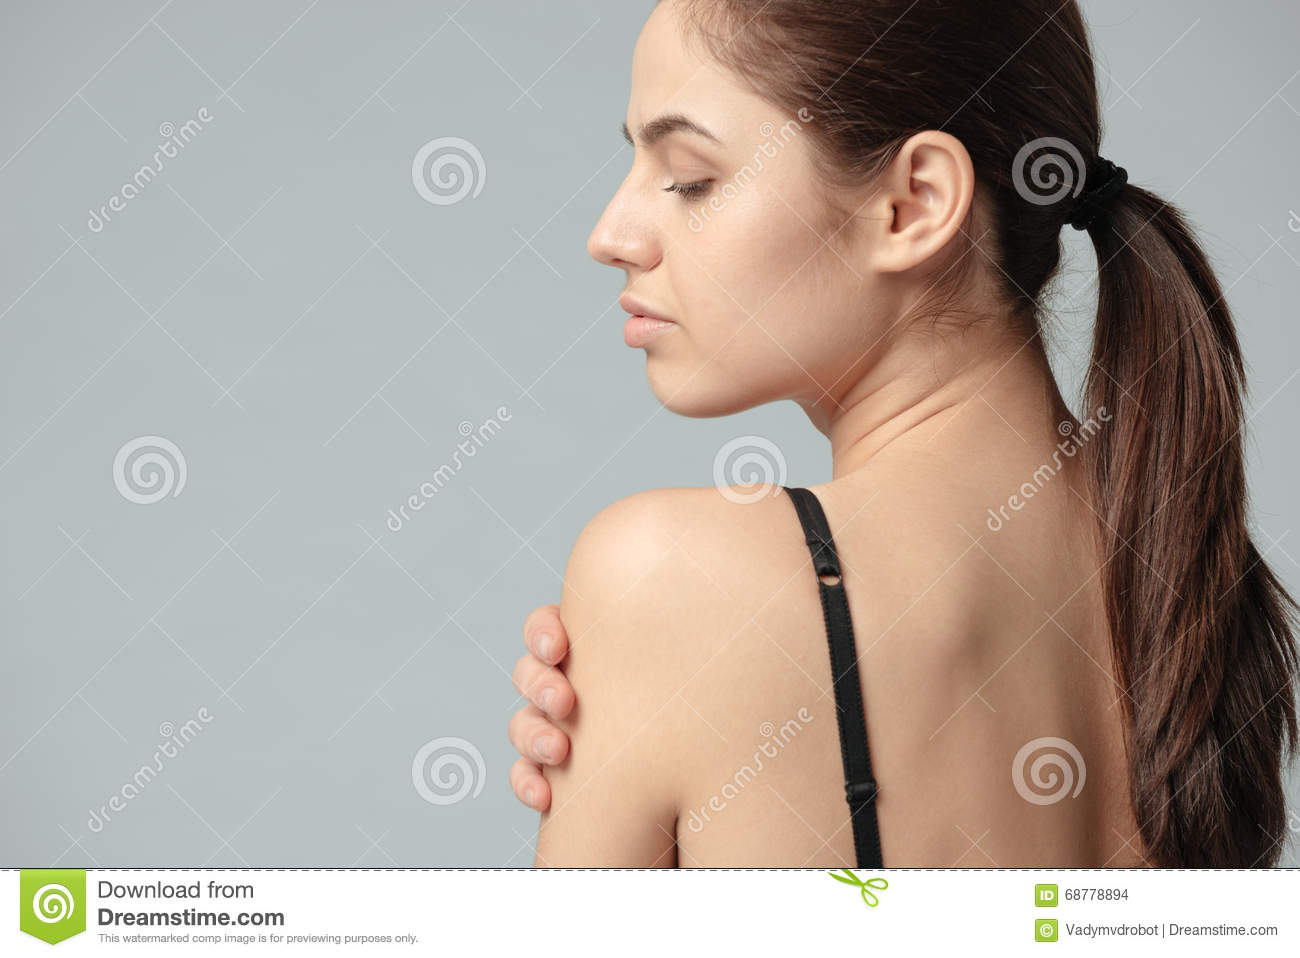 Woman Posing With Naked Shoulder Stock Photo - Image of